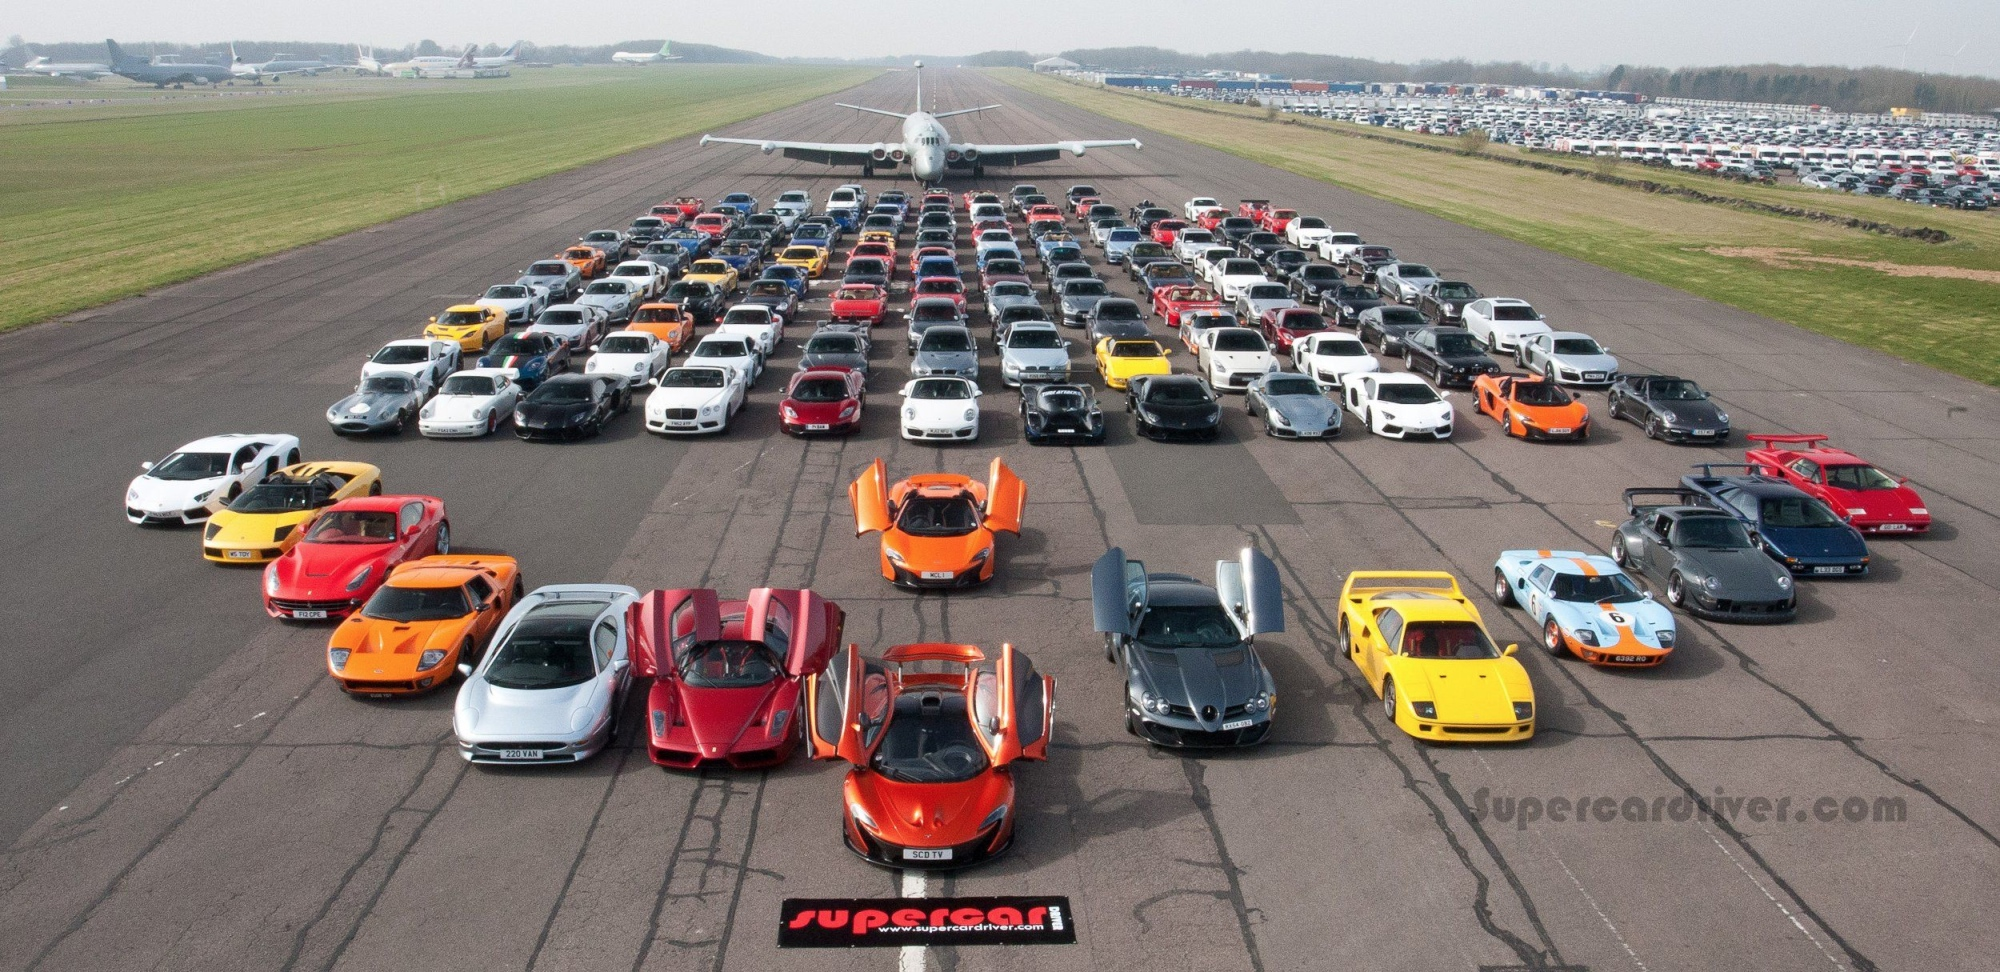 Watch Supercars In A Traffic Jam Autoevolution